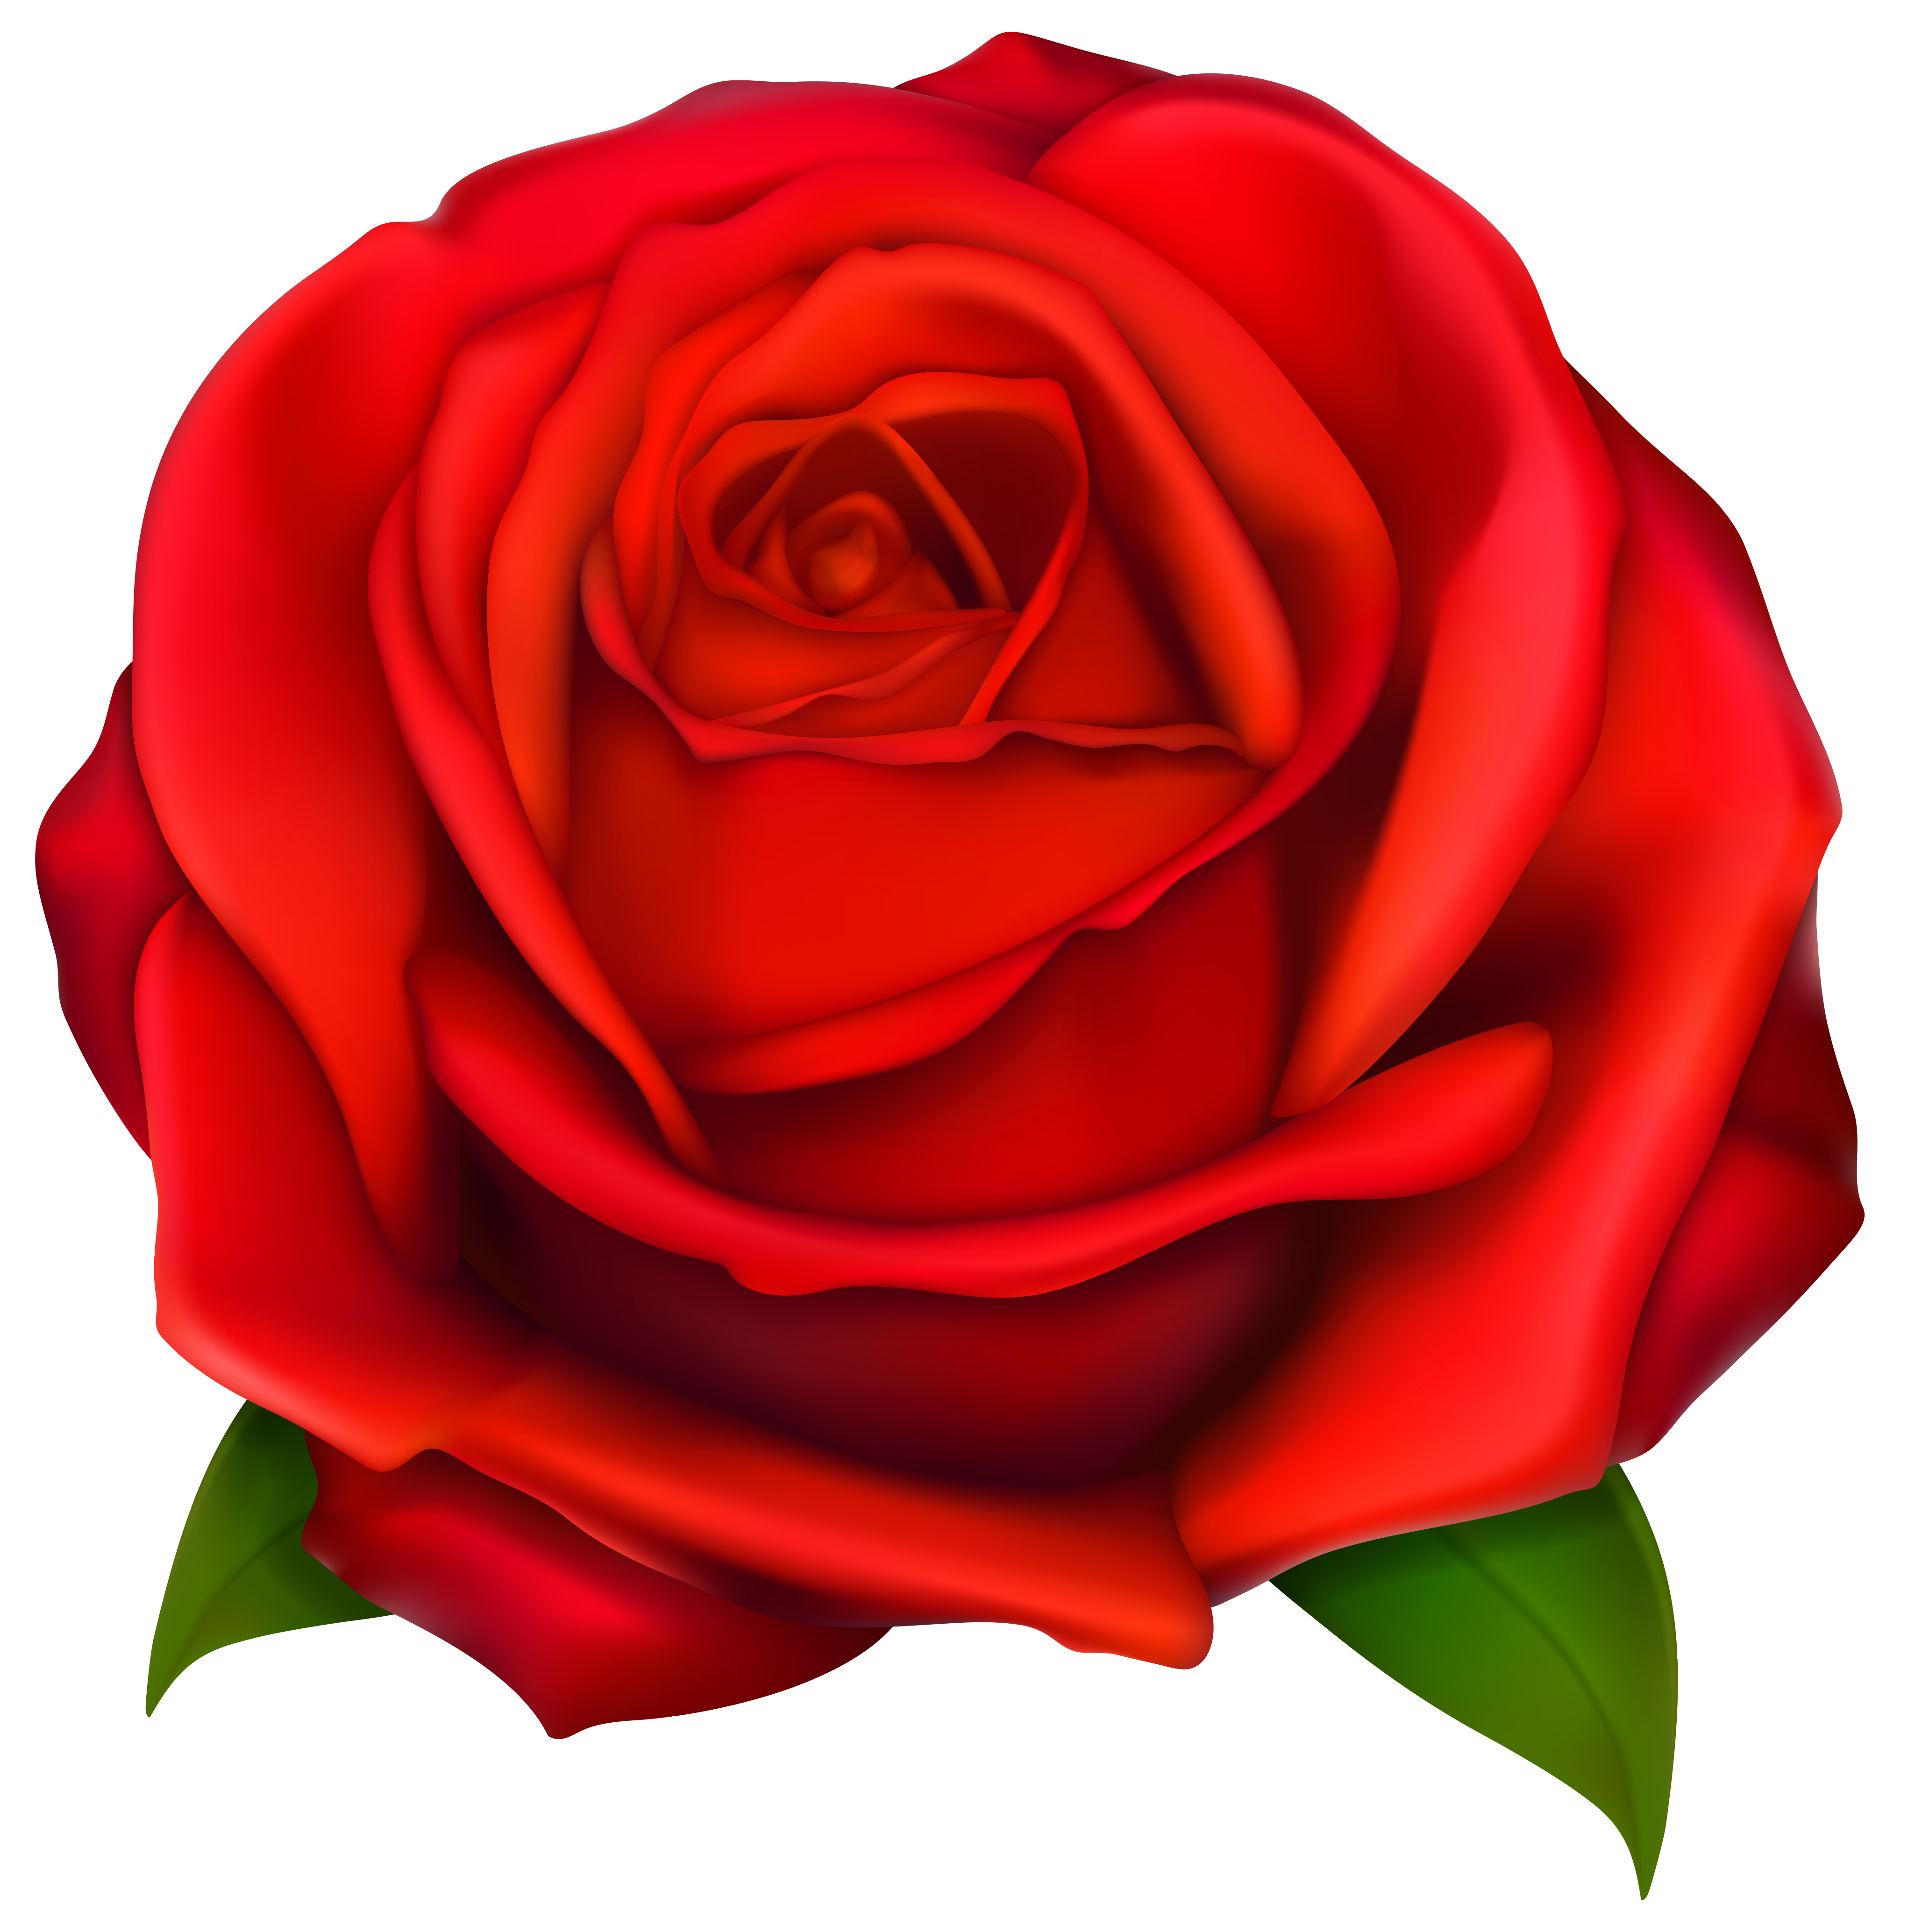 Image Of Clip Art Red Rose 2 Red Roses C-Image of clip art red rose 2 red roses clip art images free-9